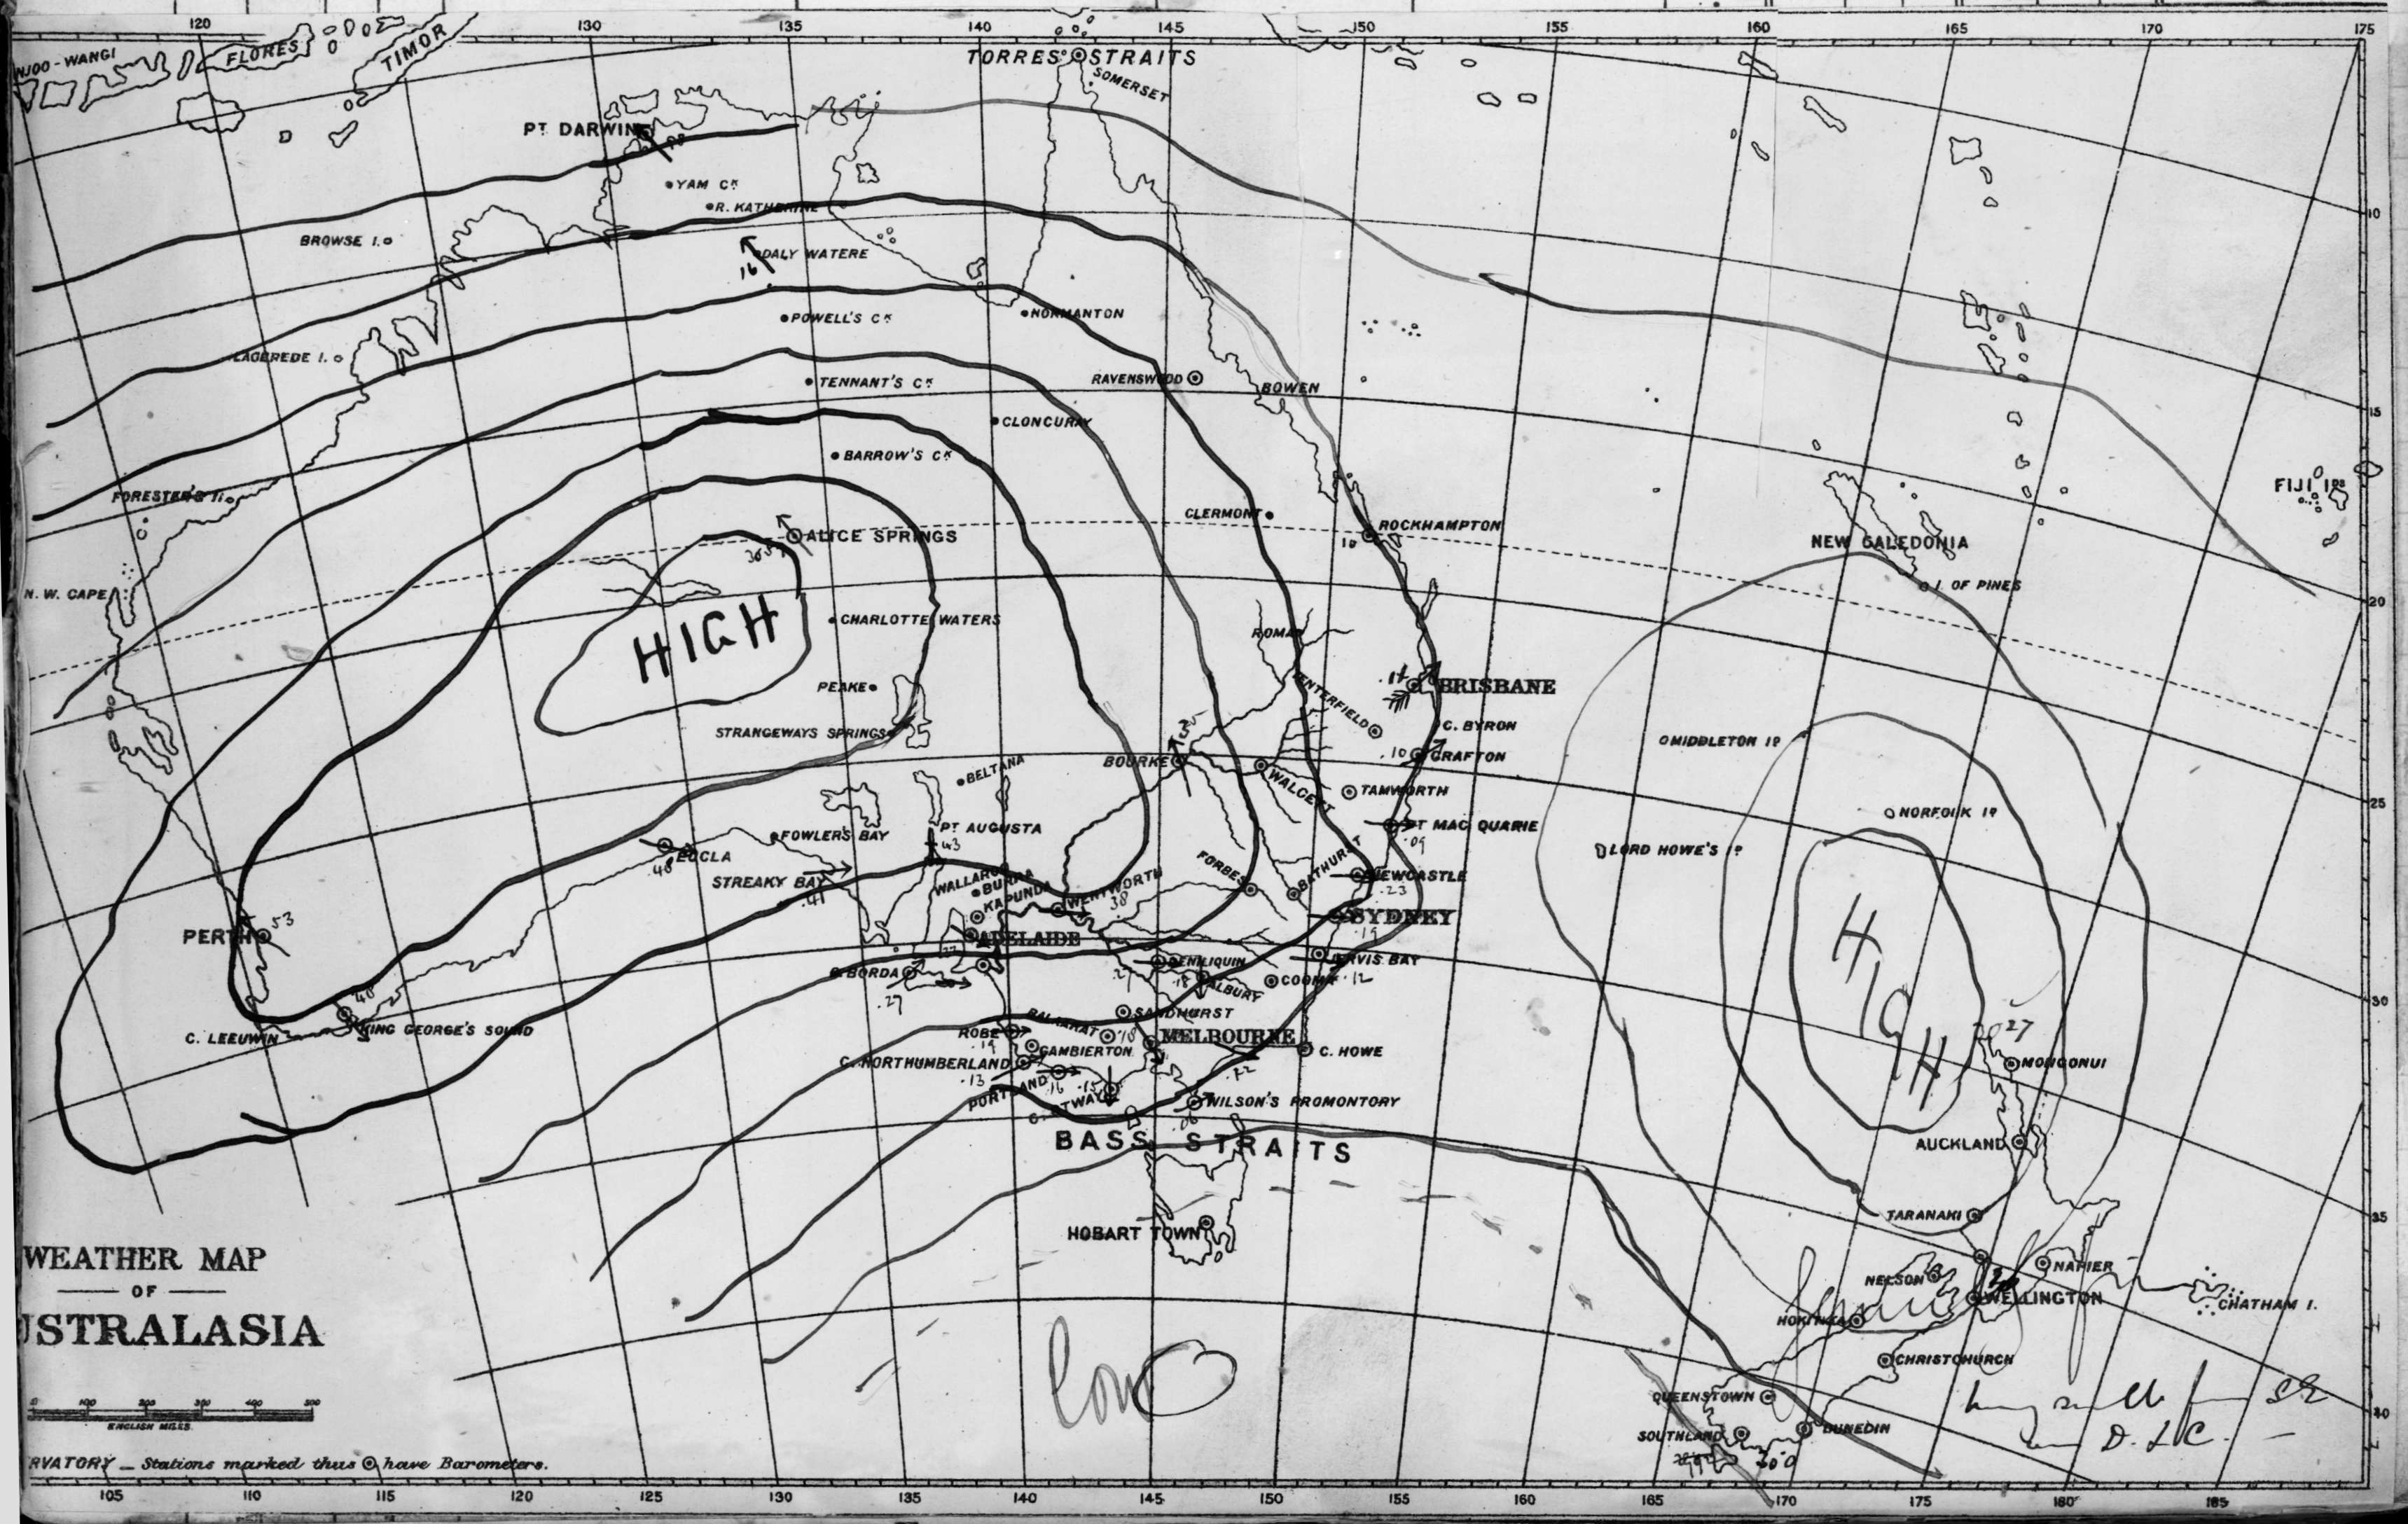 18810803c0900 Weather map